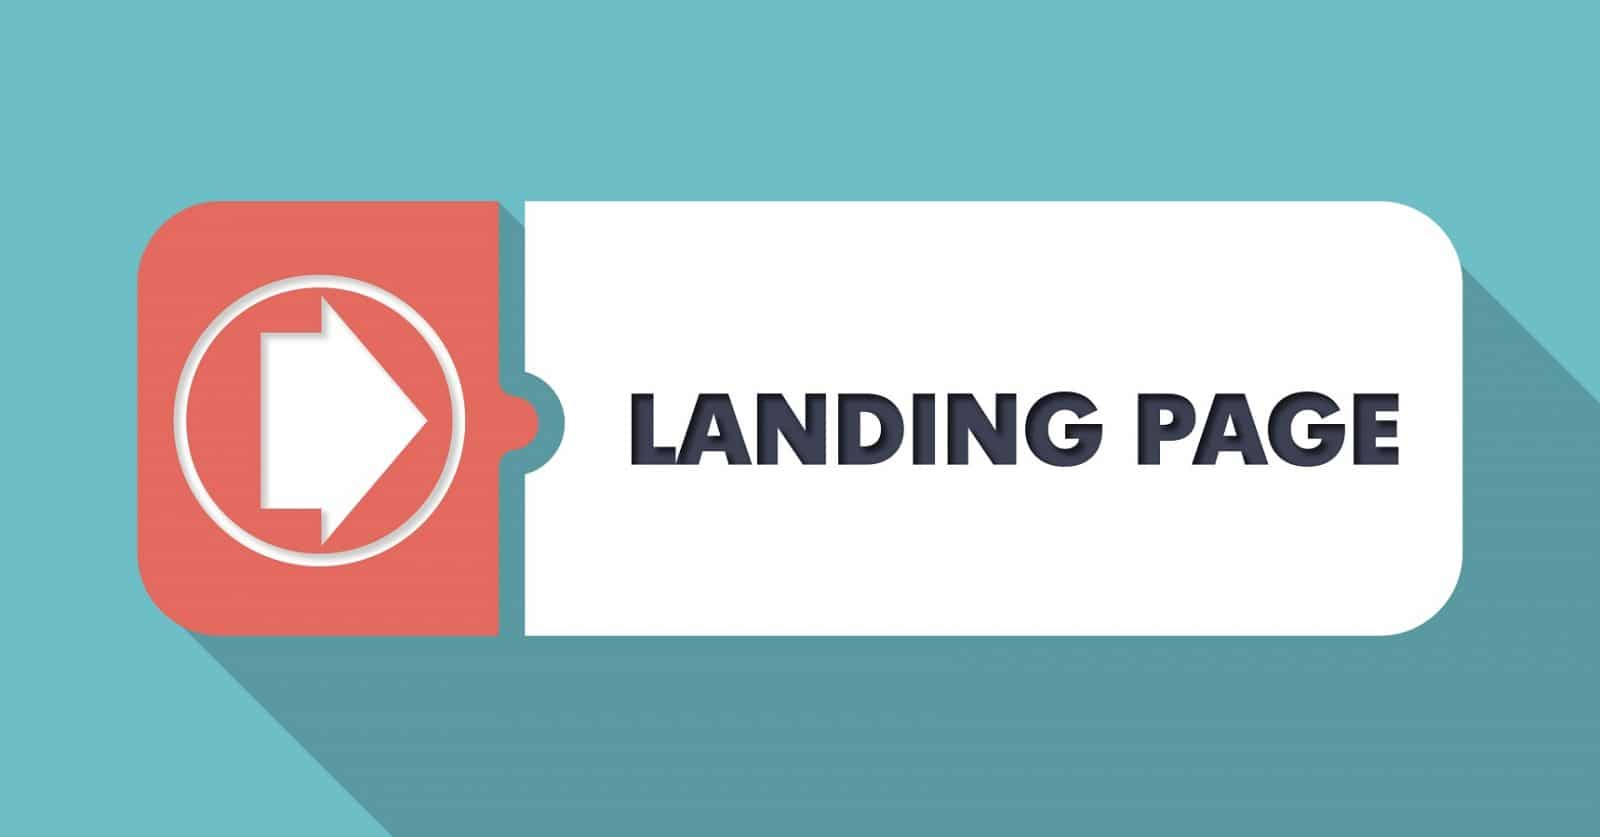 Common copywriting mistakes for landing pages